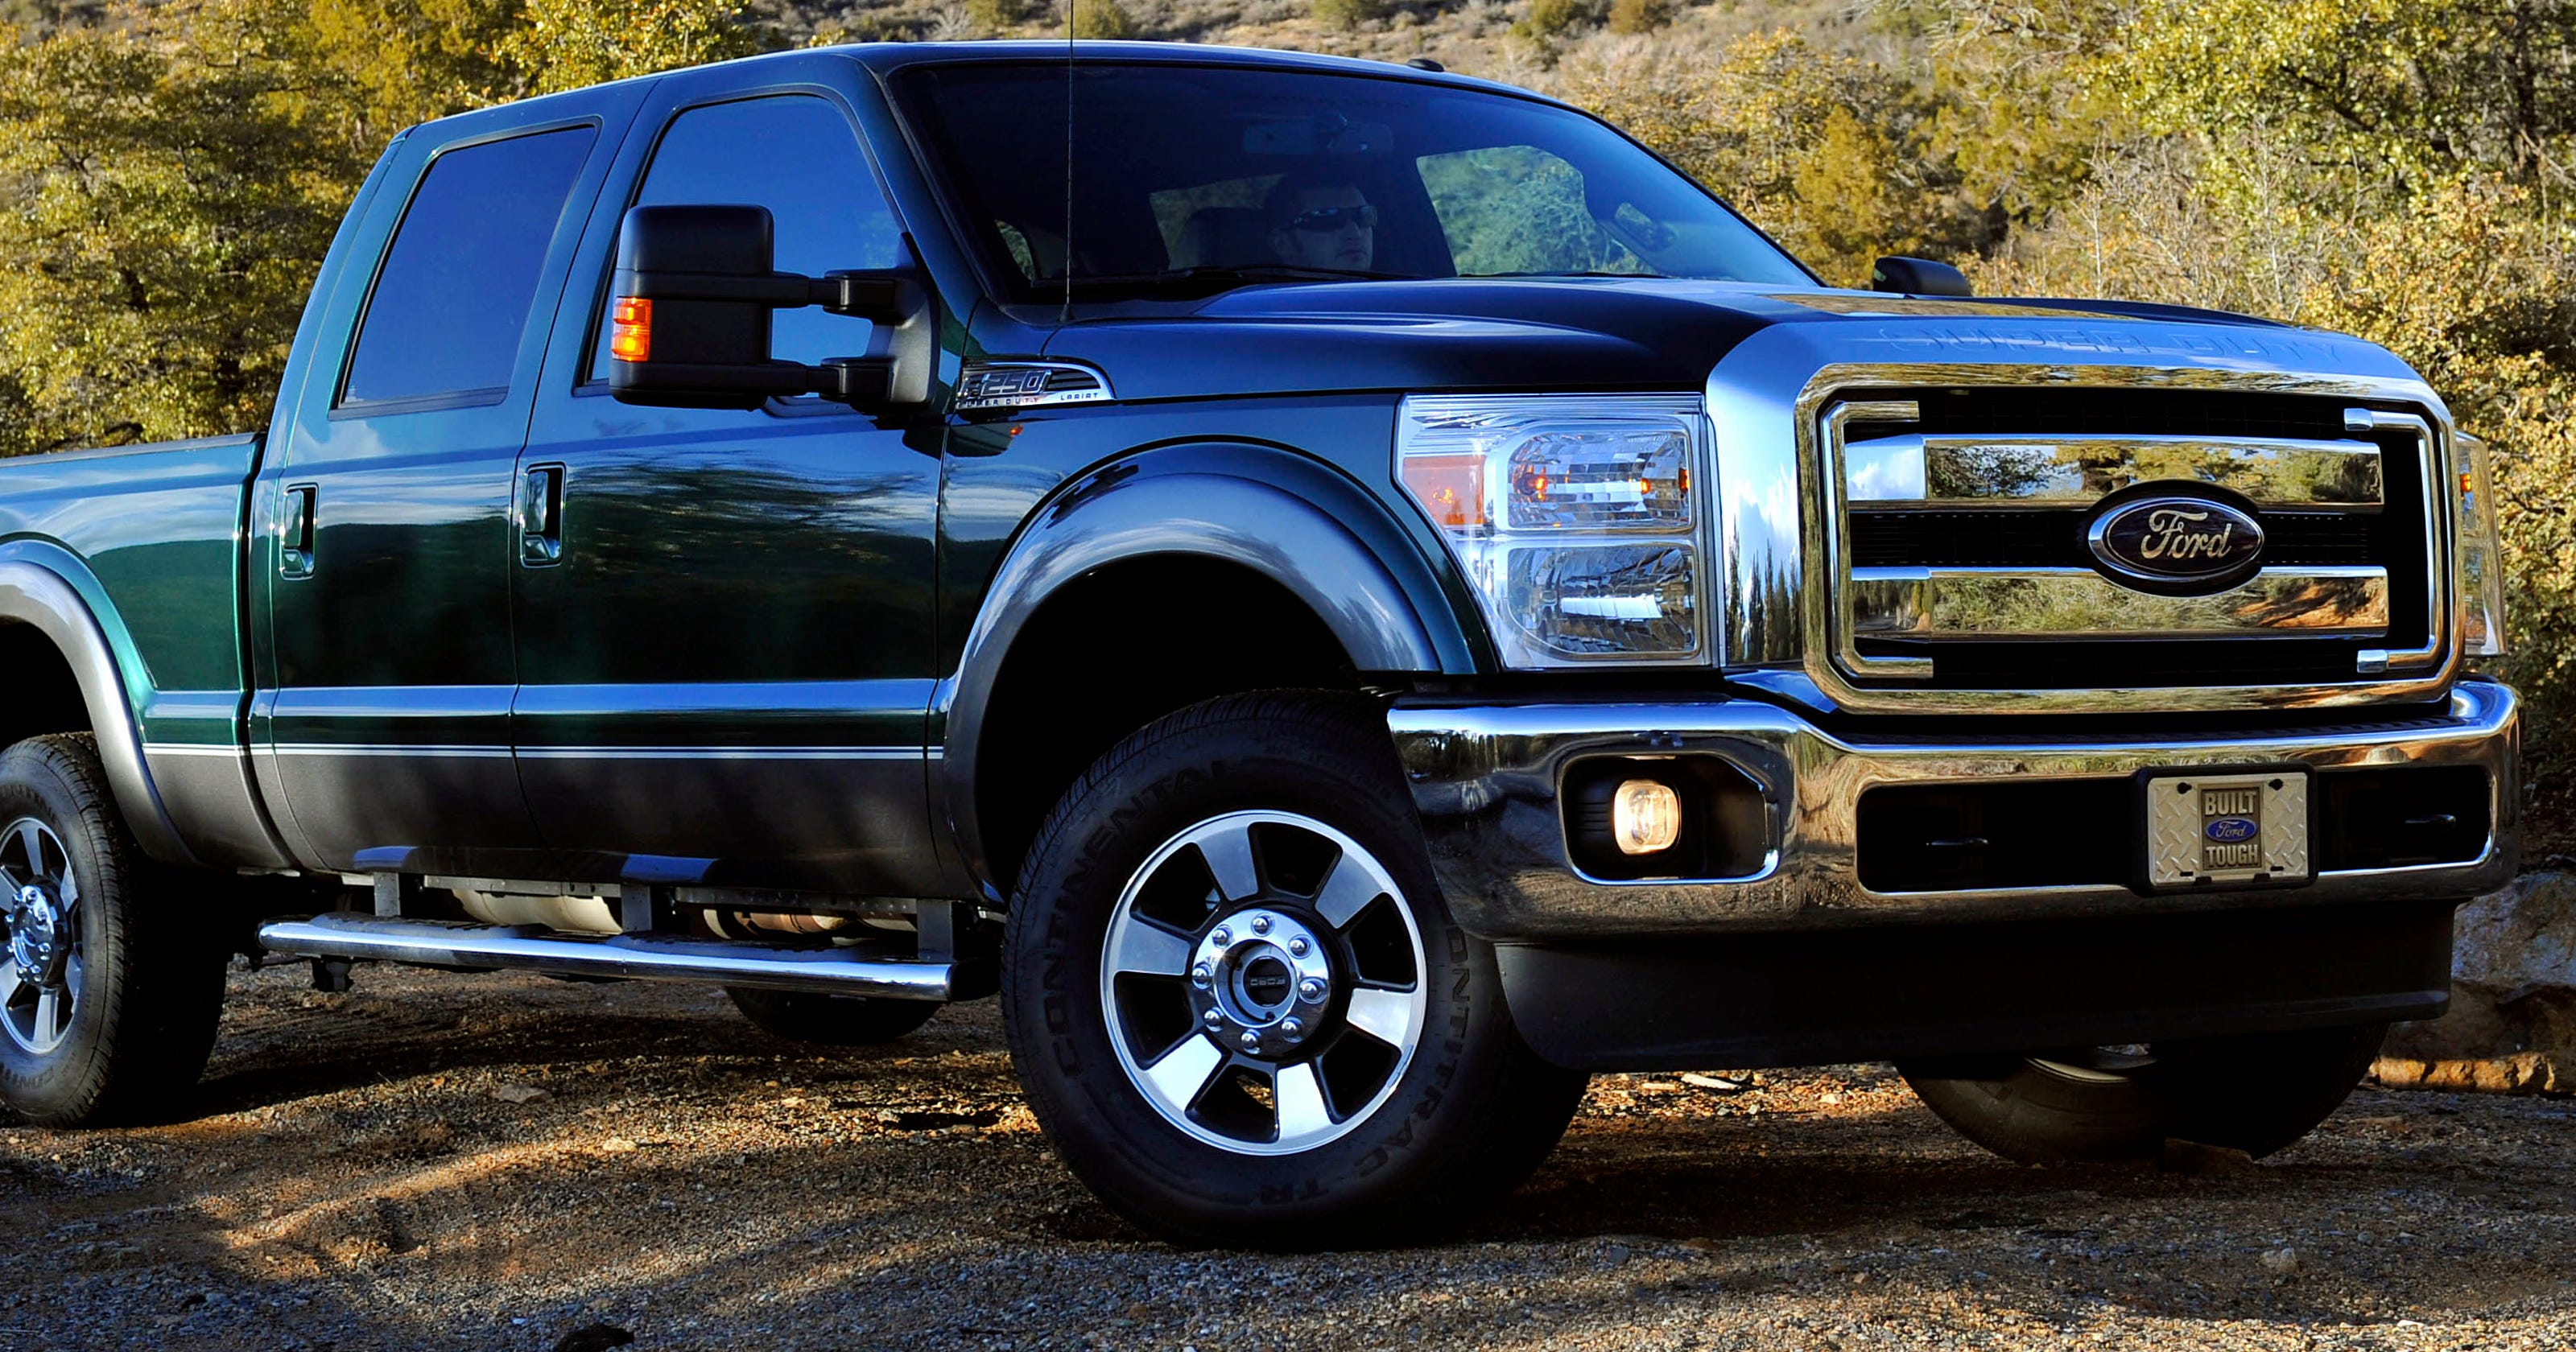 Top 10 Which Vehicles Will Last 200000 Miles 2001 Toyota Sequoia Lifted